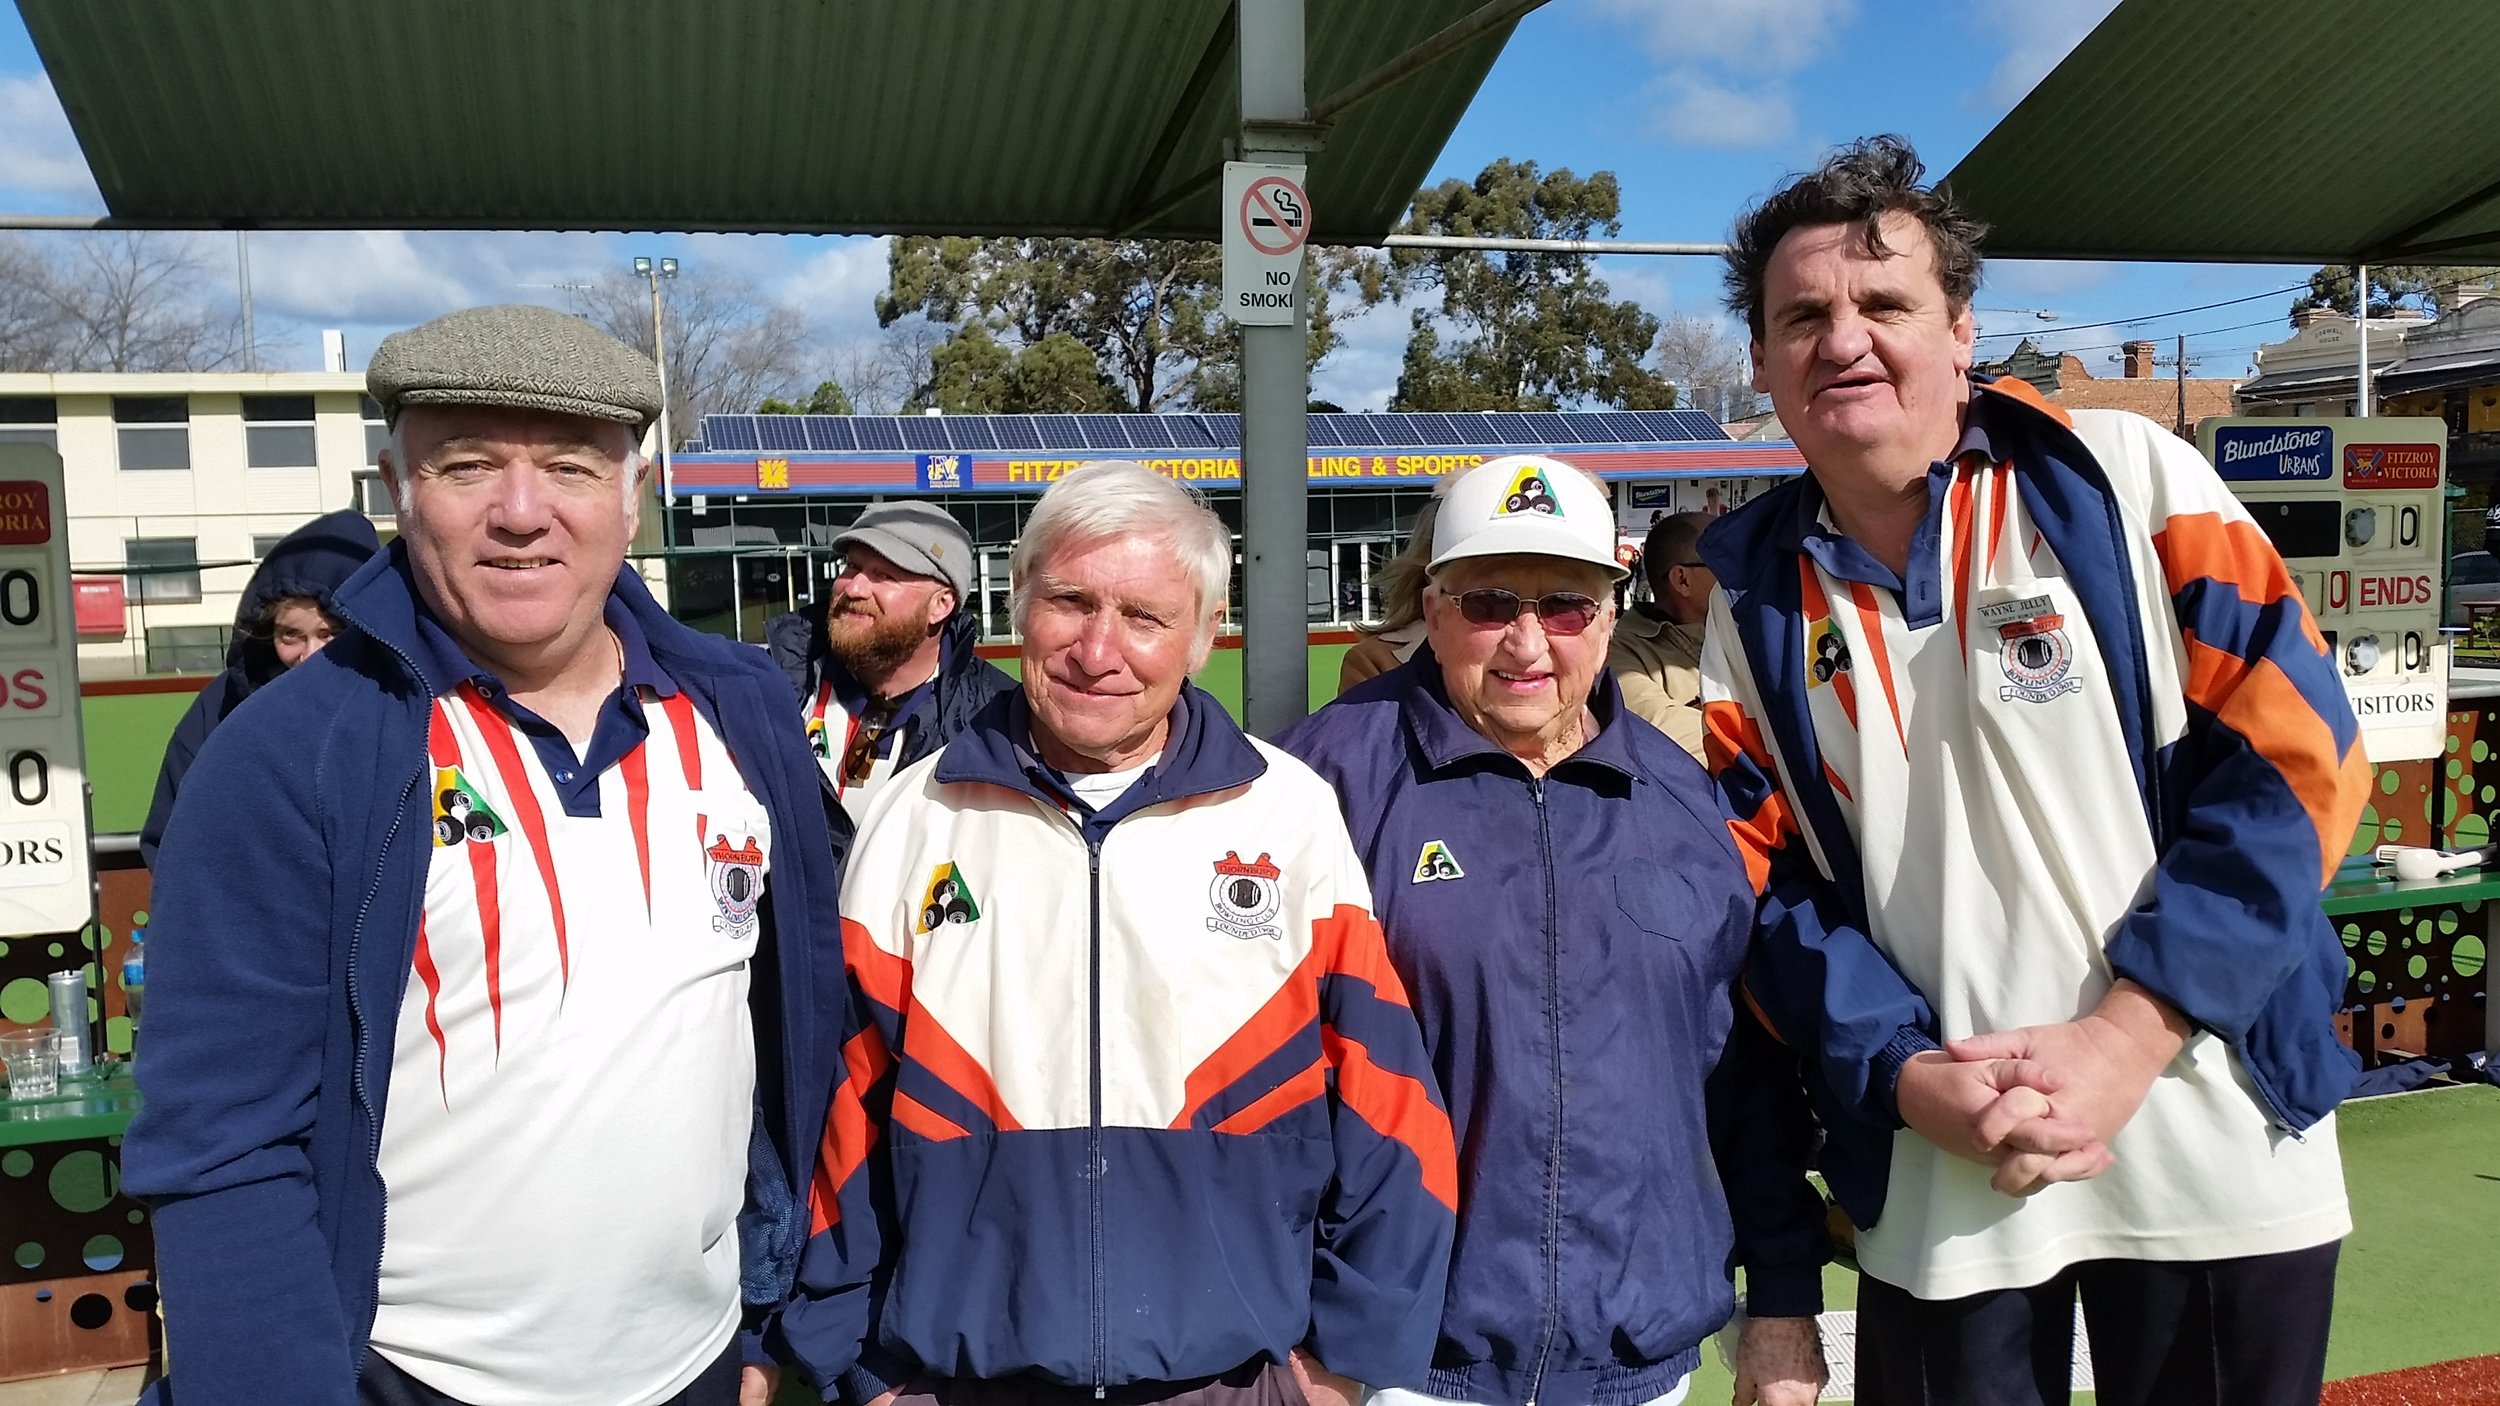 BPL Cup 2017 - Graham, Cliff, Jean and Wayne competing at Fitzroy.